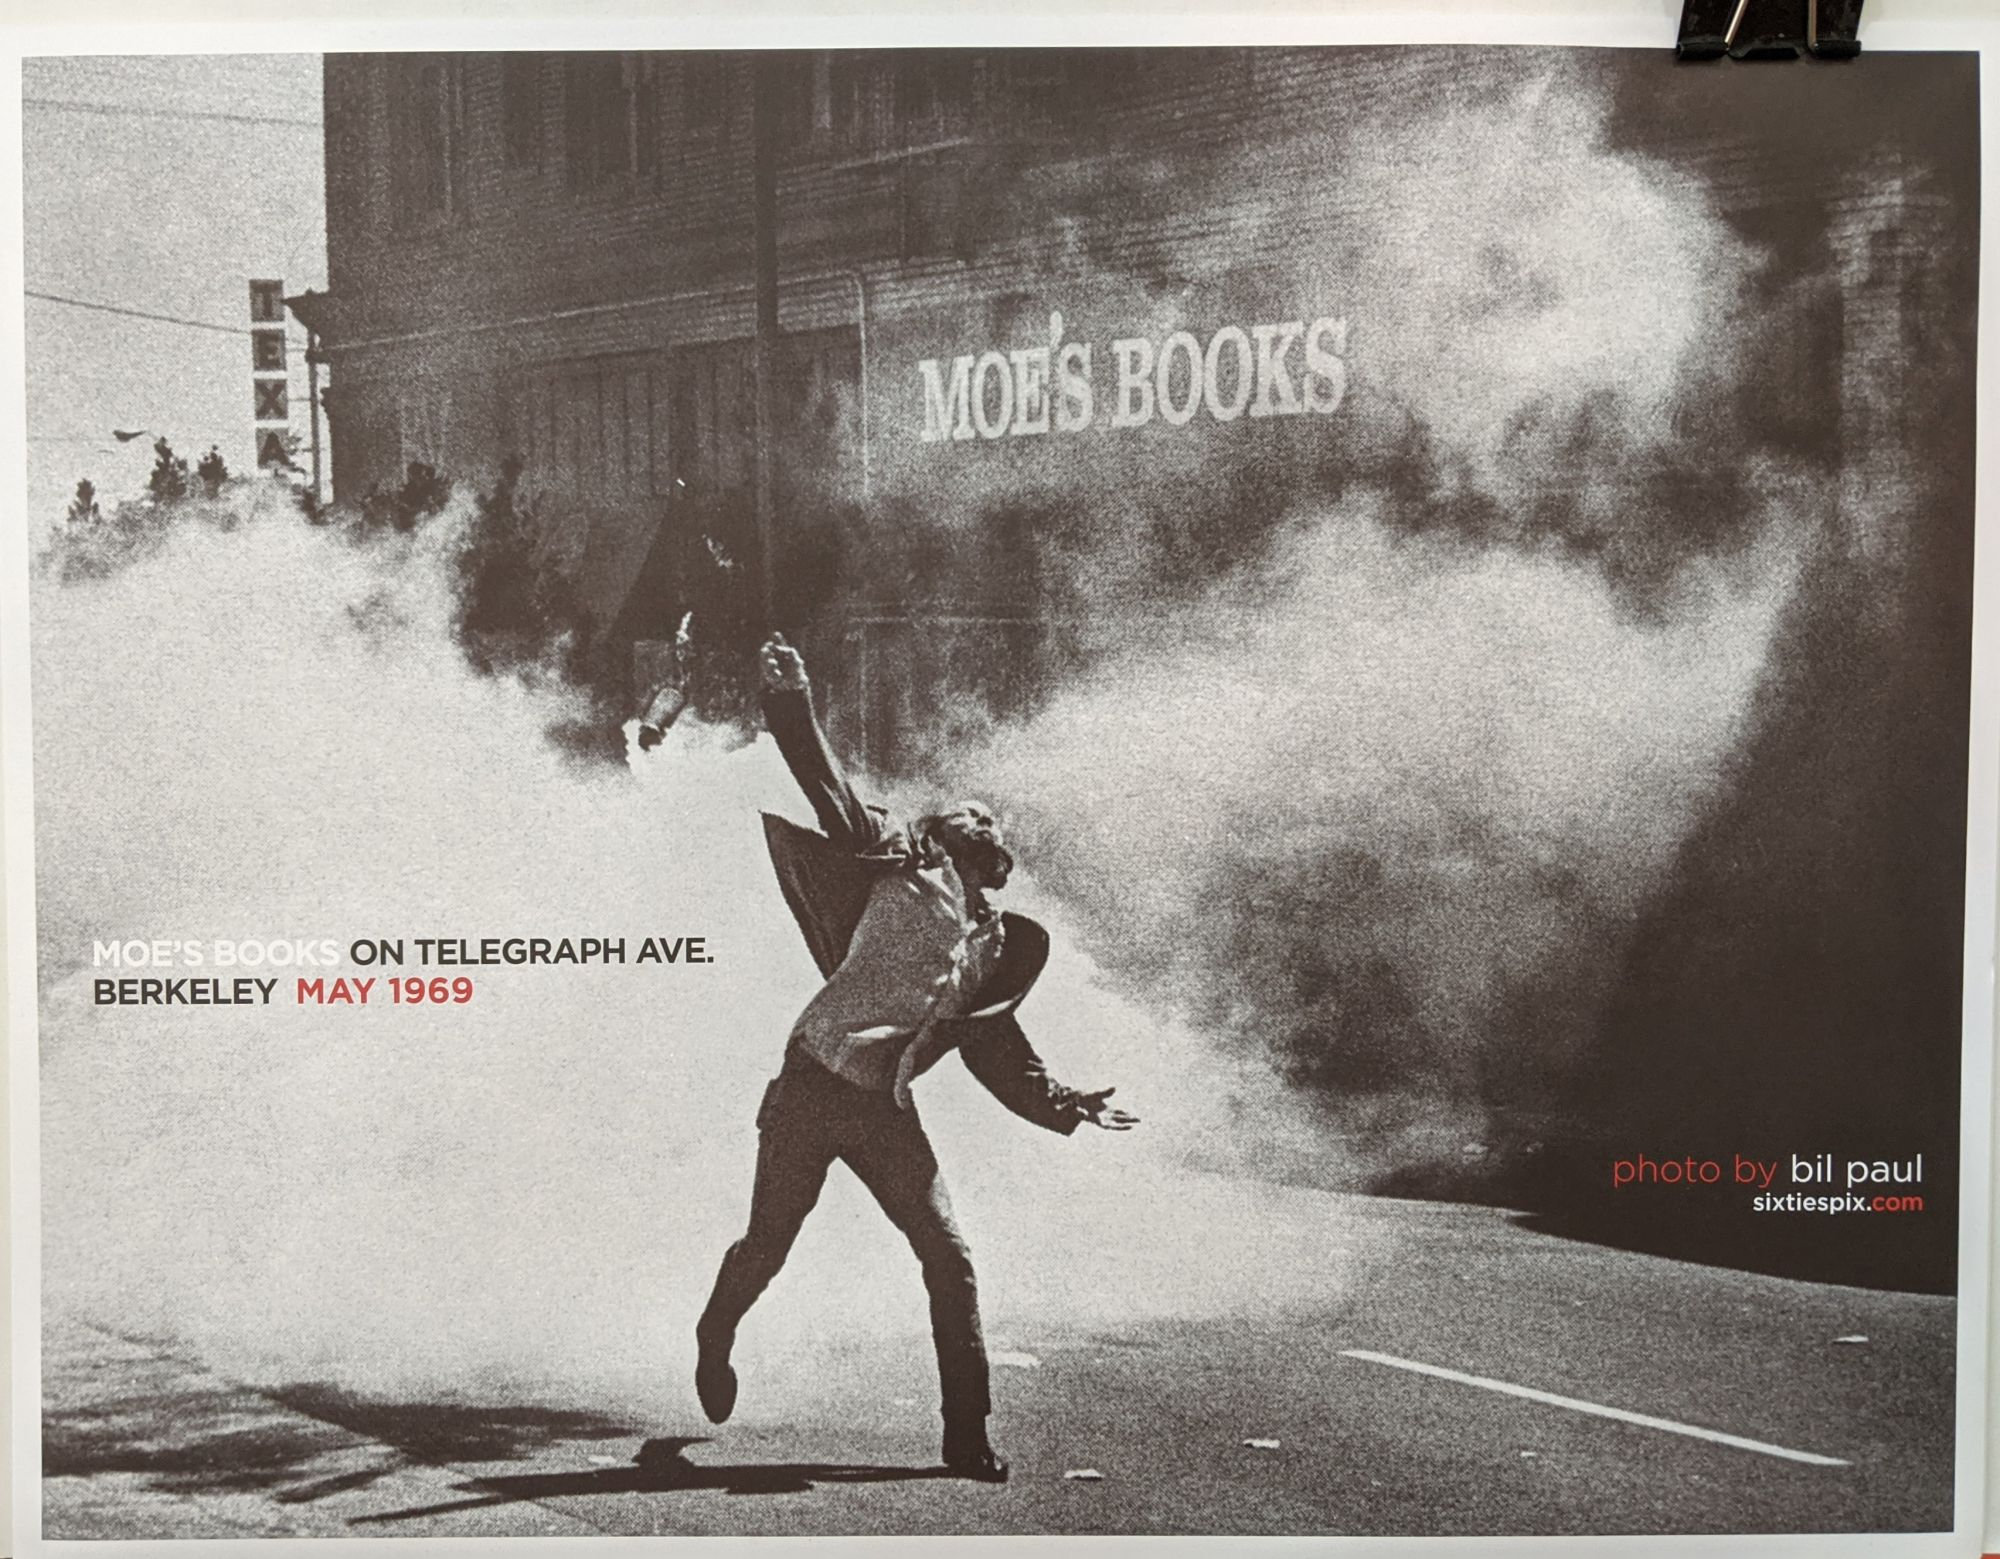 Photograph of protestor on Telegraph Ave during the People's Park protests (May 1969), showing Moe's Books in the background. This image was also made into a poster, which is sold at Moe's Books.